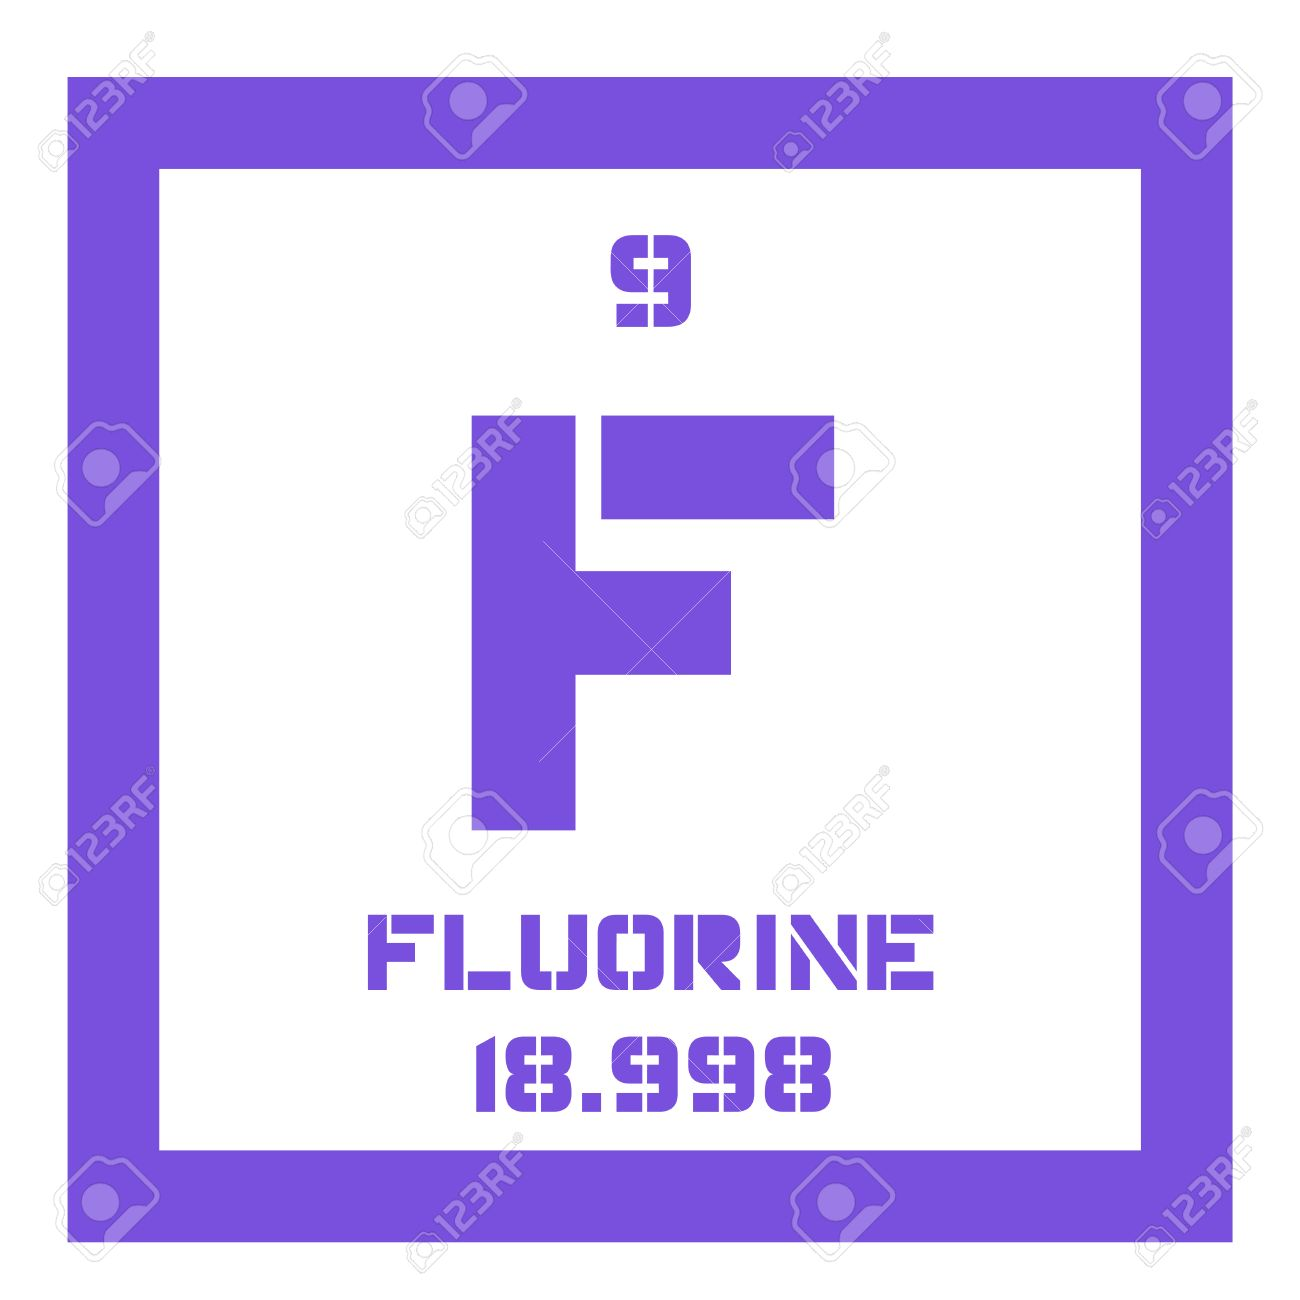 Fluorine Chemical Element The Most Electronegative Element